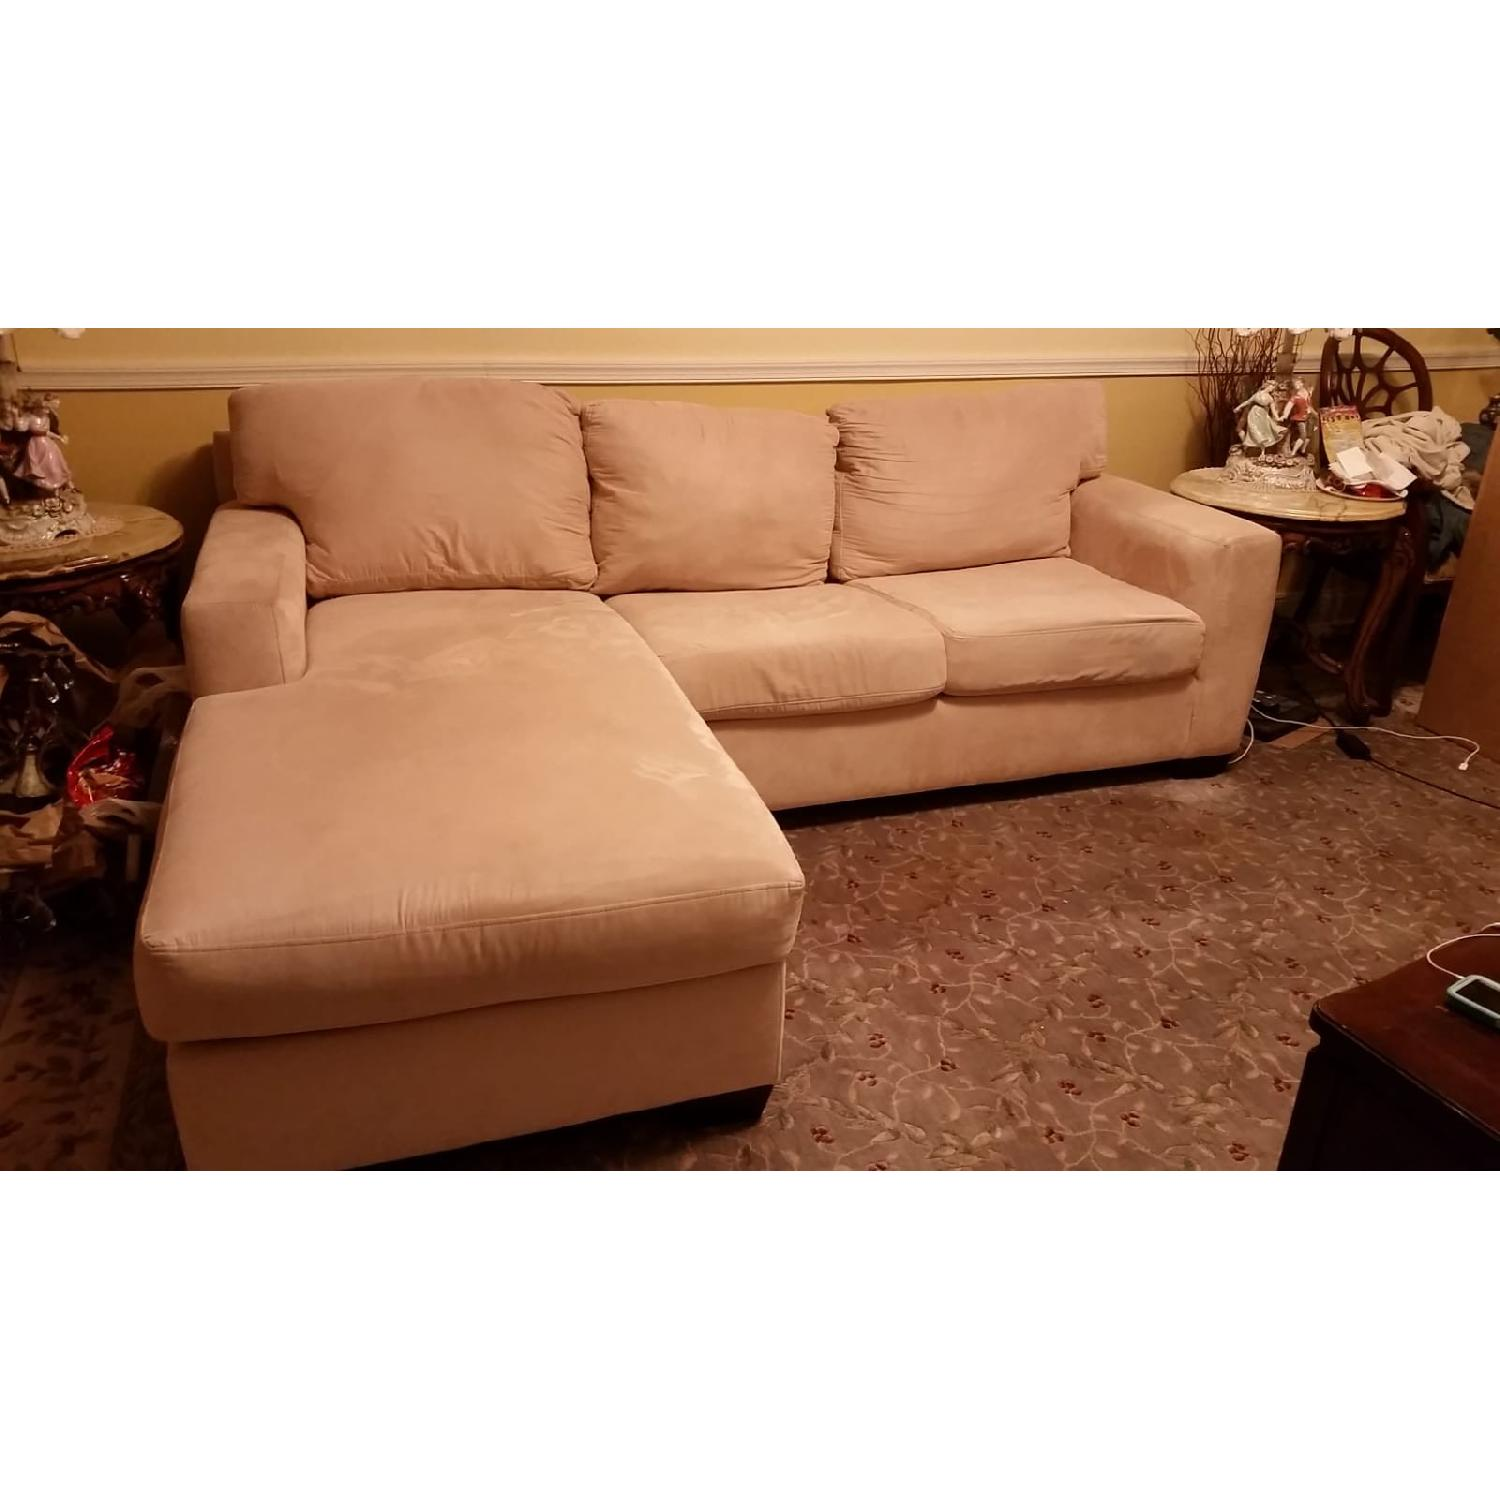 Macy's Portofino Queen Sleeper Sectional Sofa - image-3